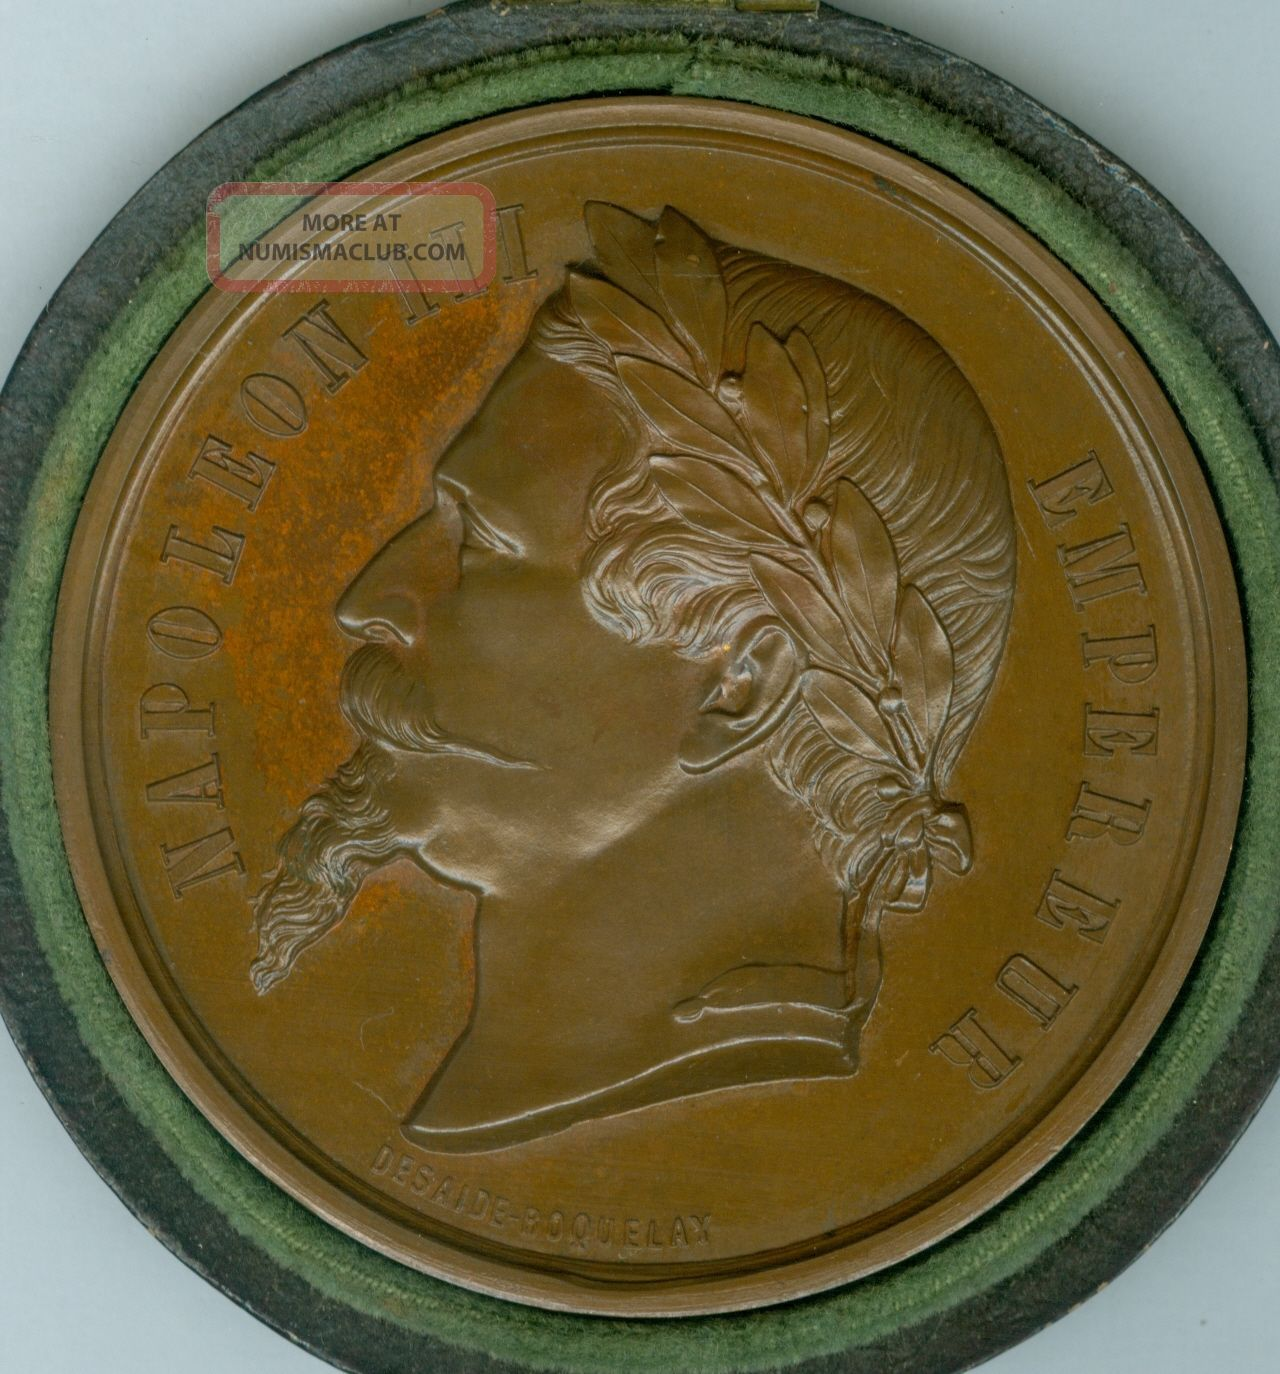 1865 French Award Medal For The Exposition Of Cannes Races,  By Desaide - Roquelay Exonumia photo